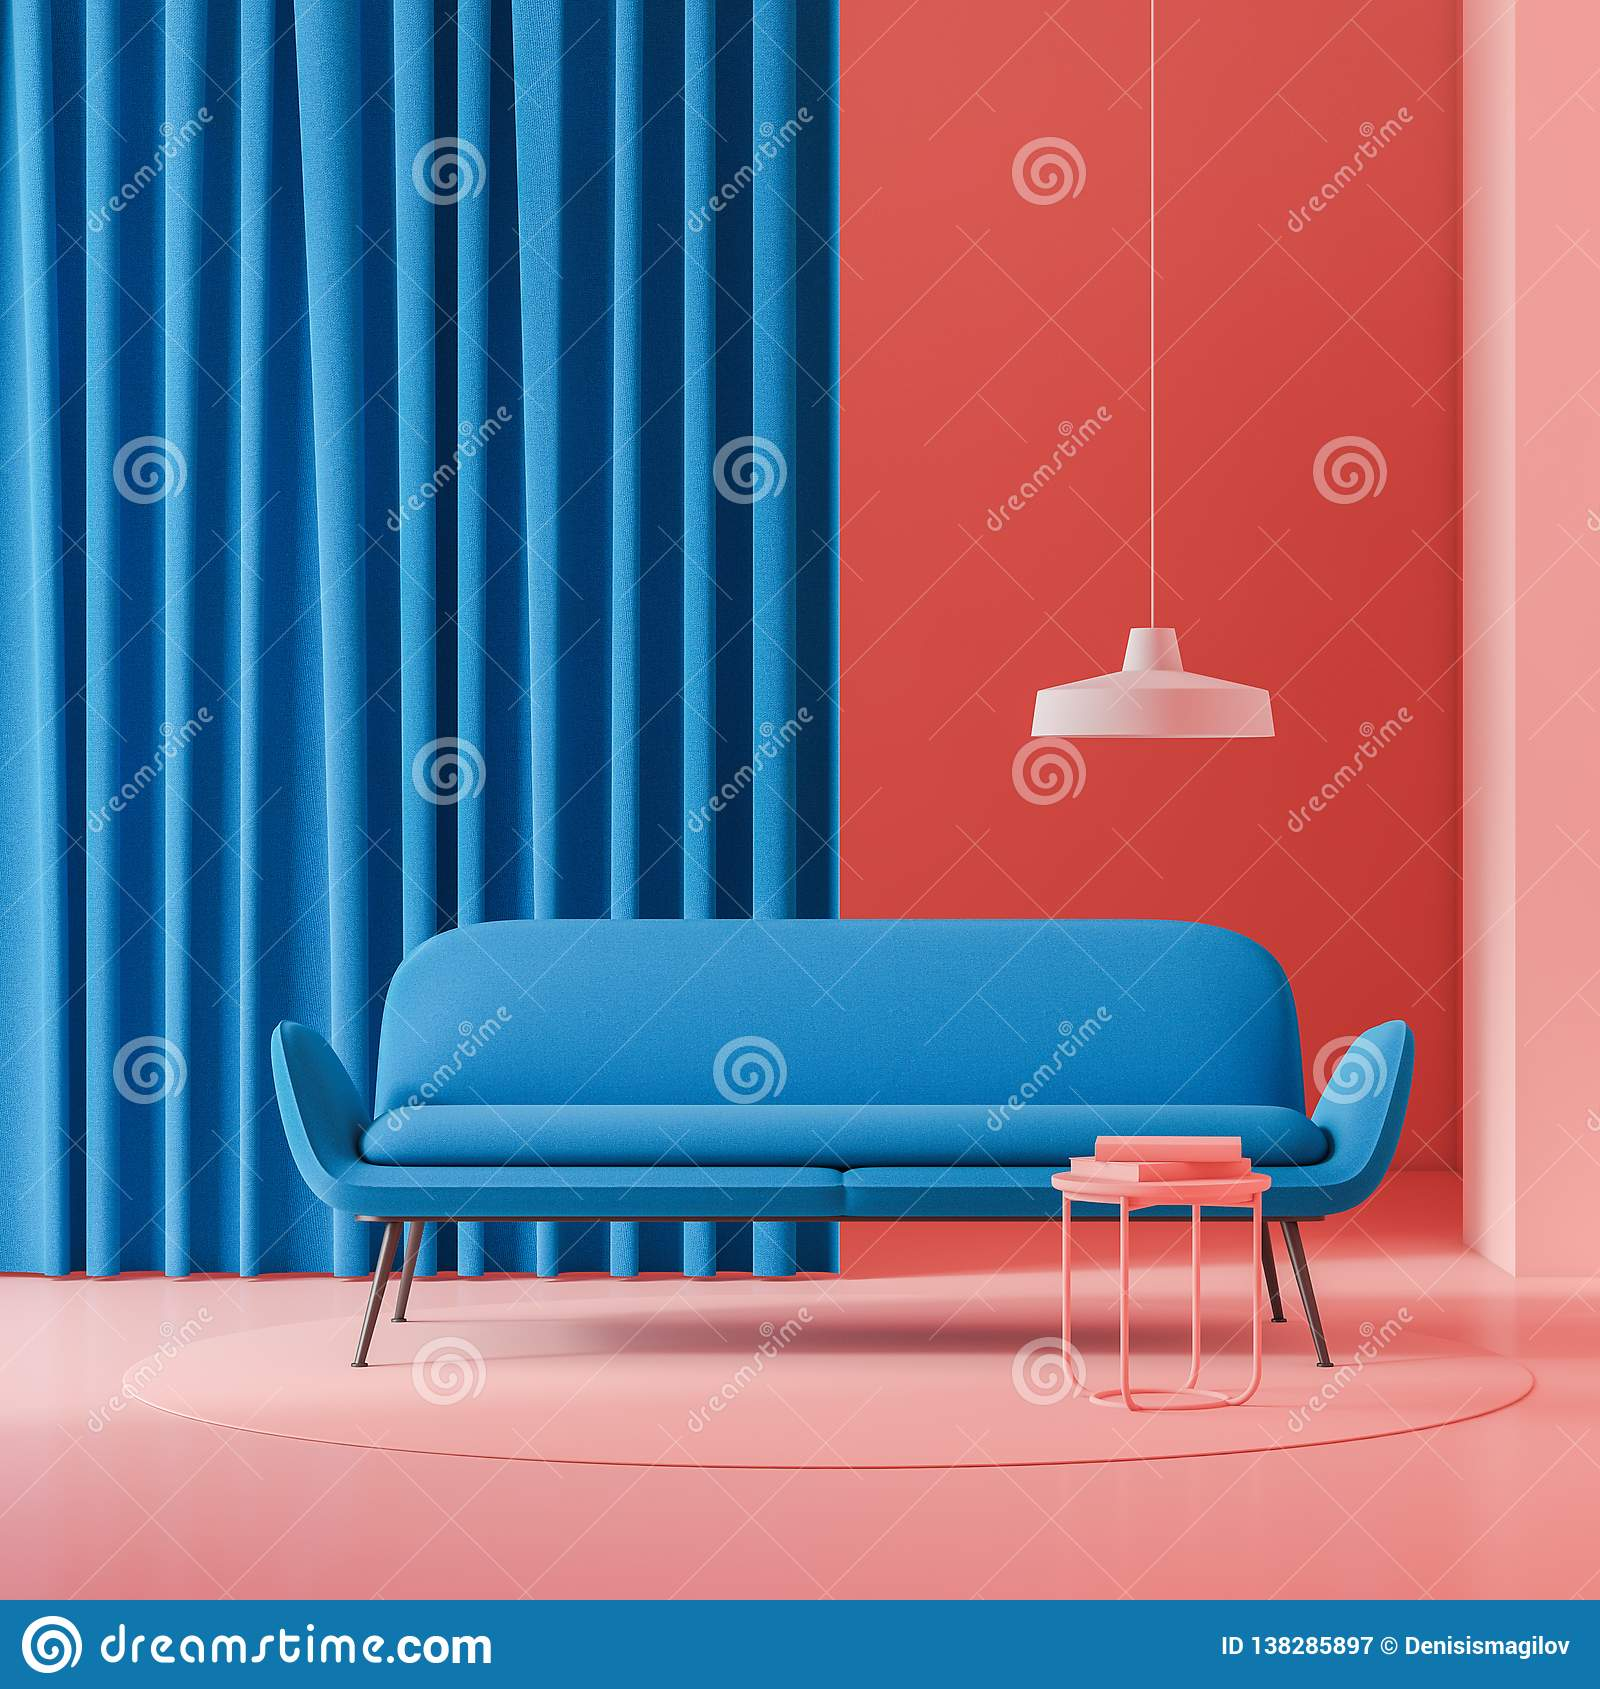 Red Living Room With Blue Sofa Stock Illustration Illustration Of Furniture Couch 138285897